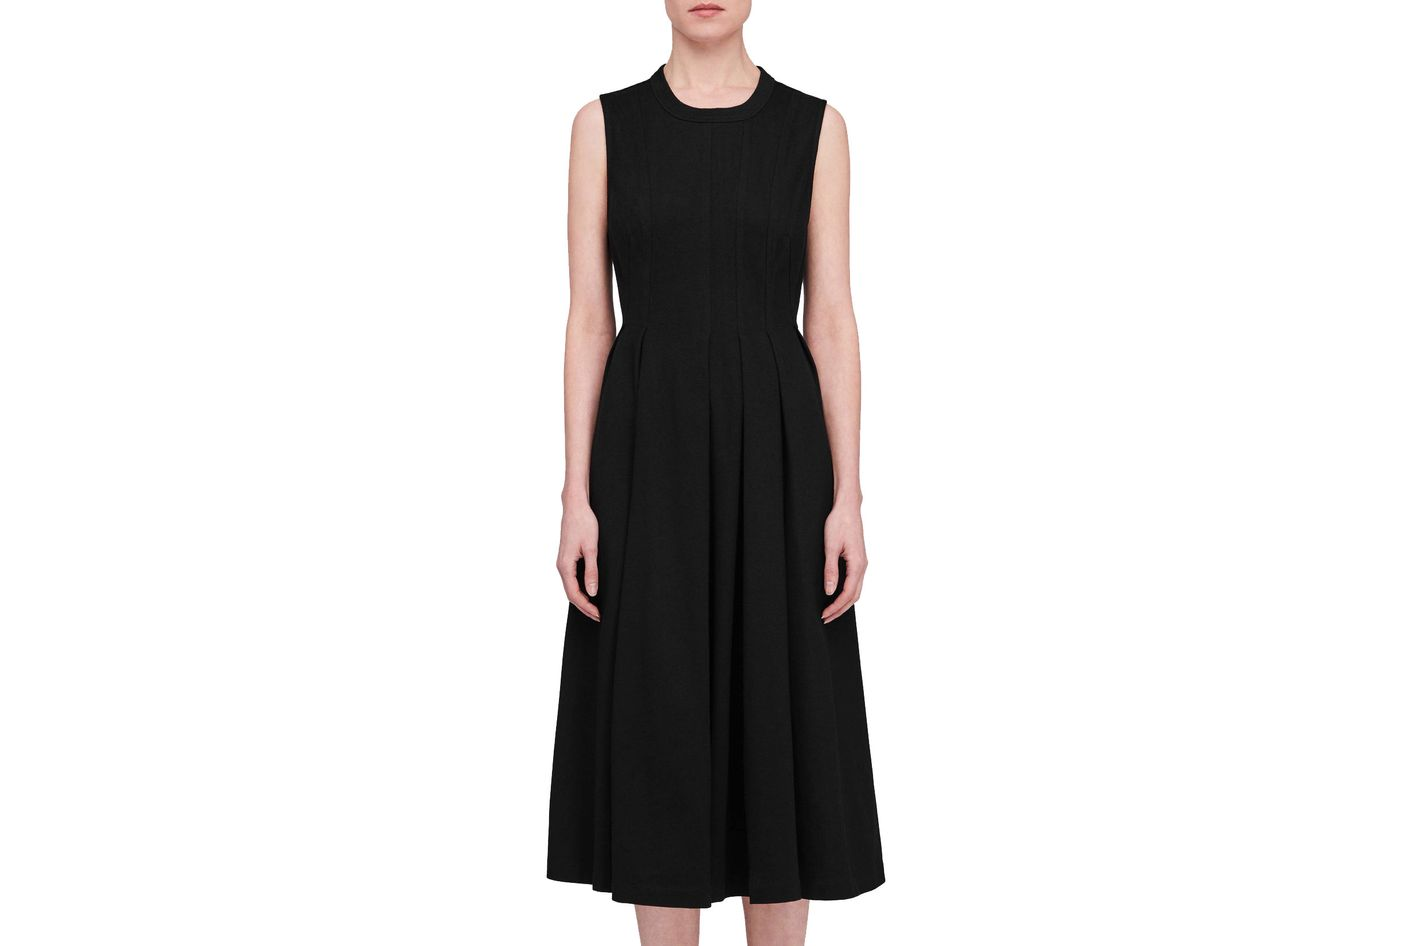 T by Alexander Wang Stiff Cotton Jersey Sleeveless Seamed Peplum Dress